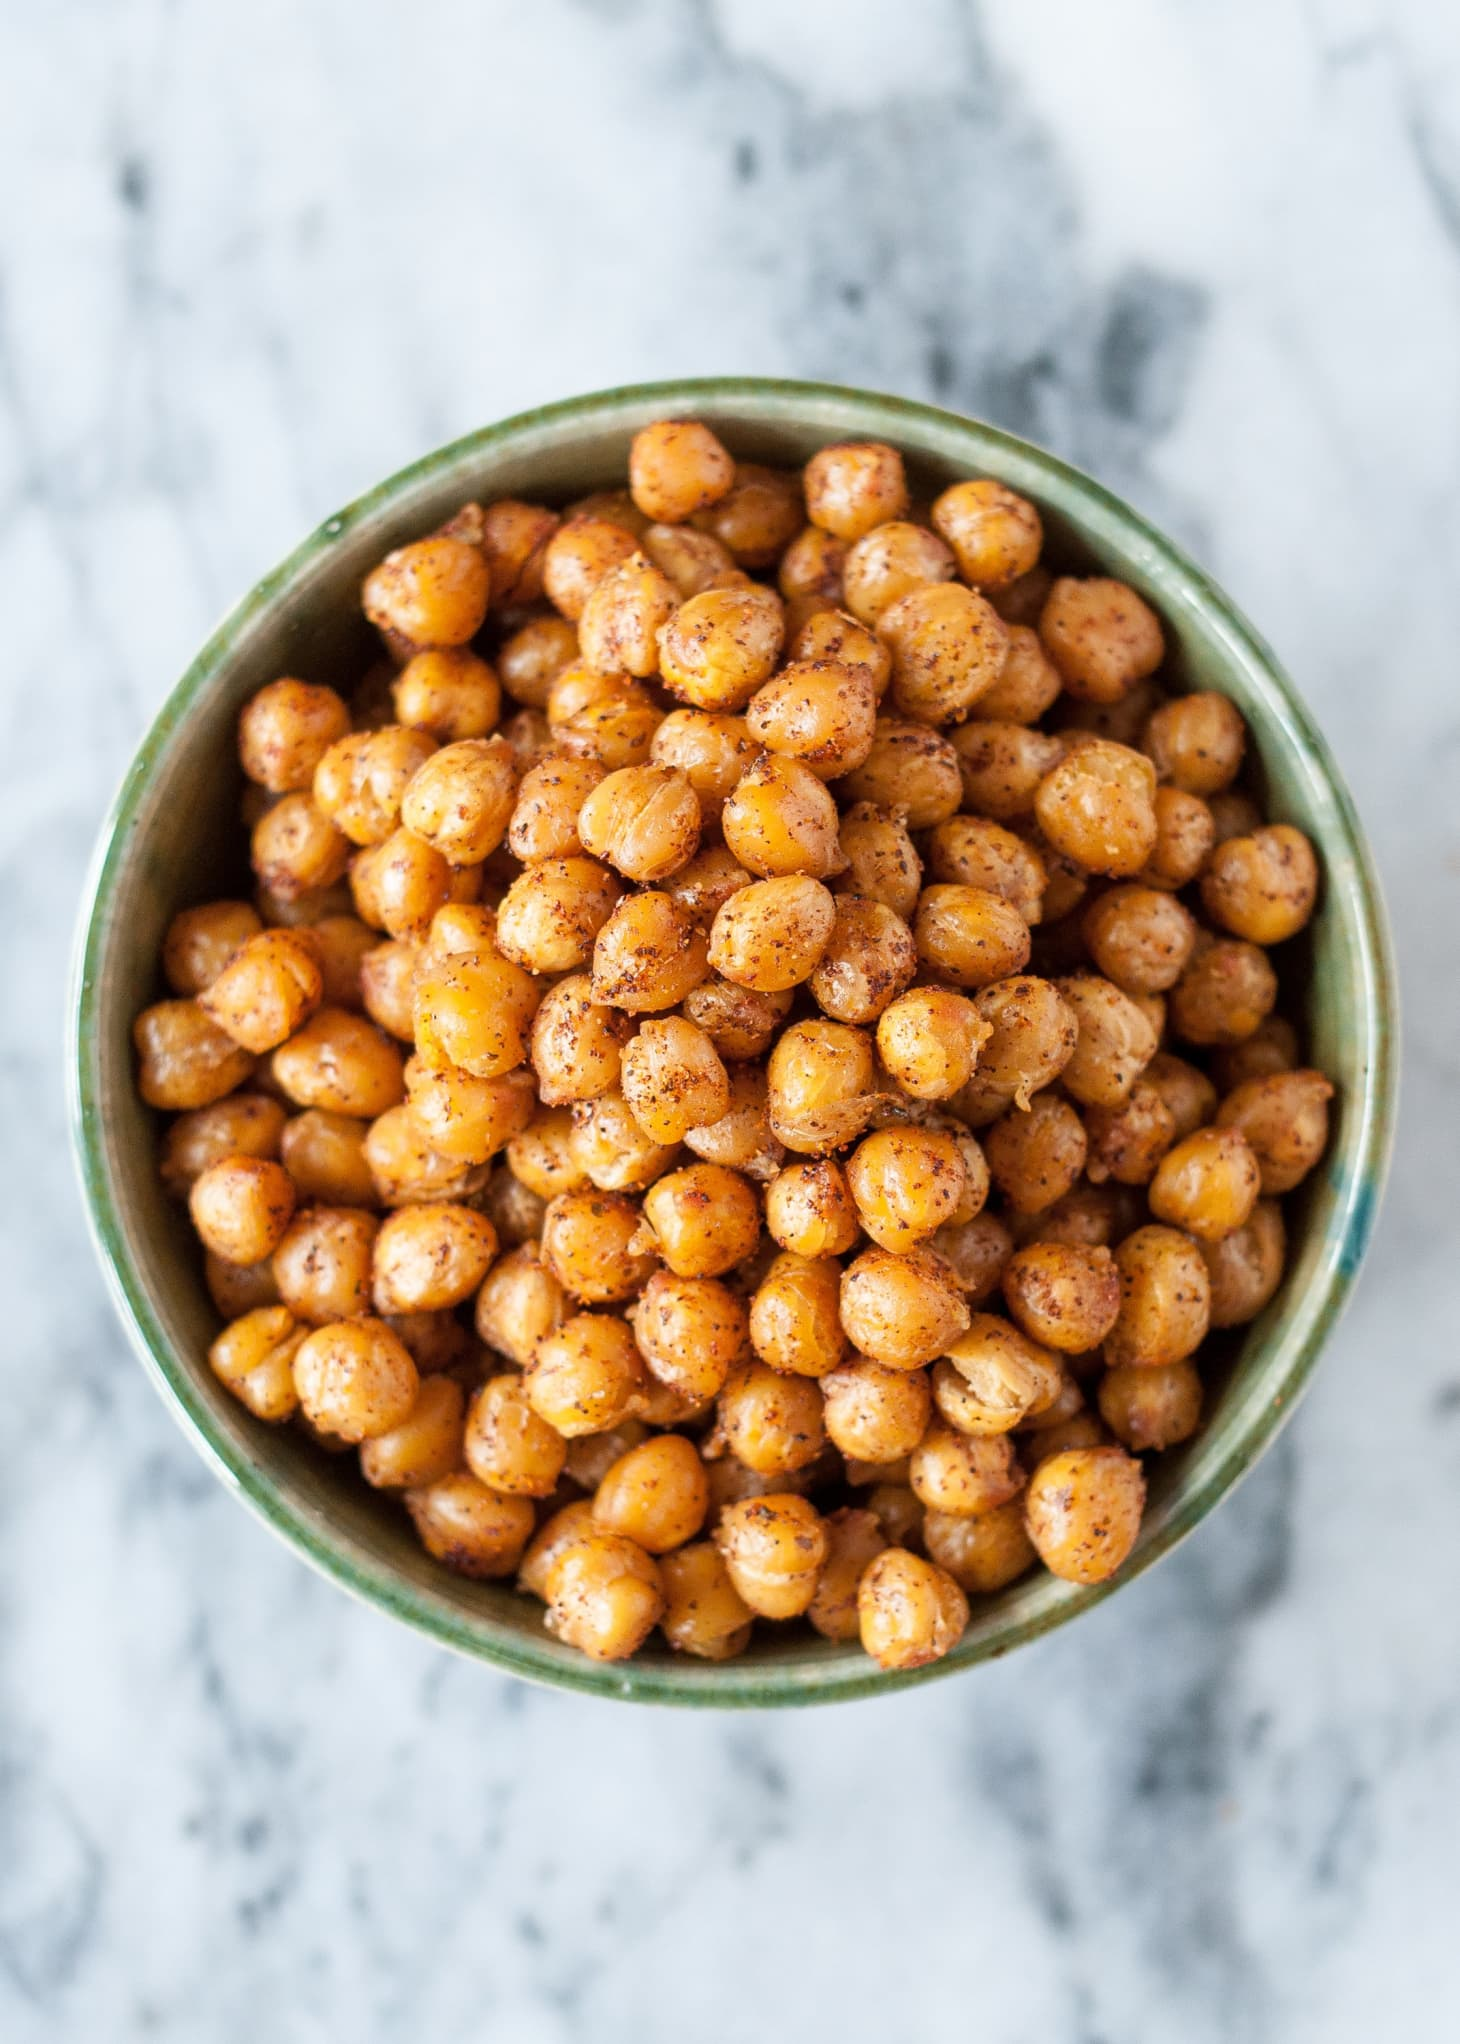 26 Easy Recipes to Make with a Can of Chickpeas   Kitchn